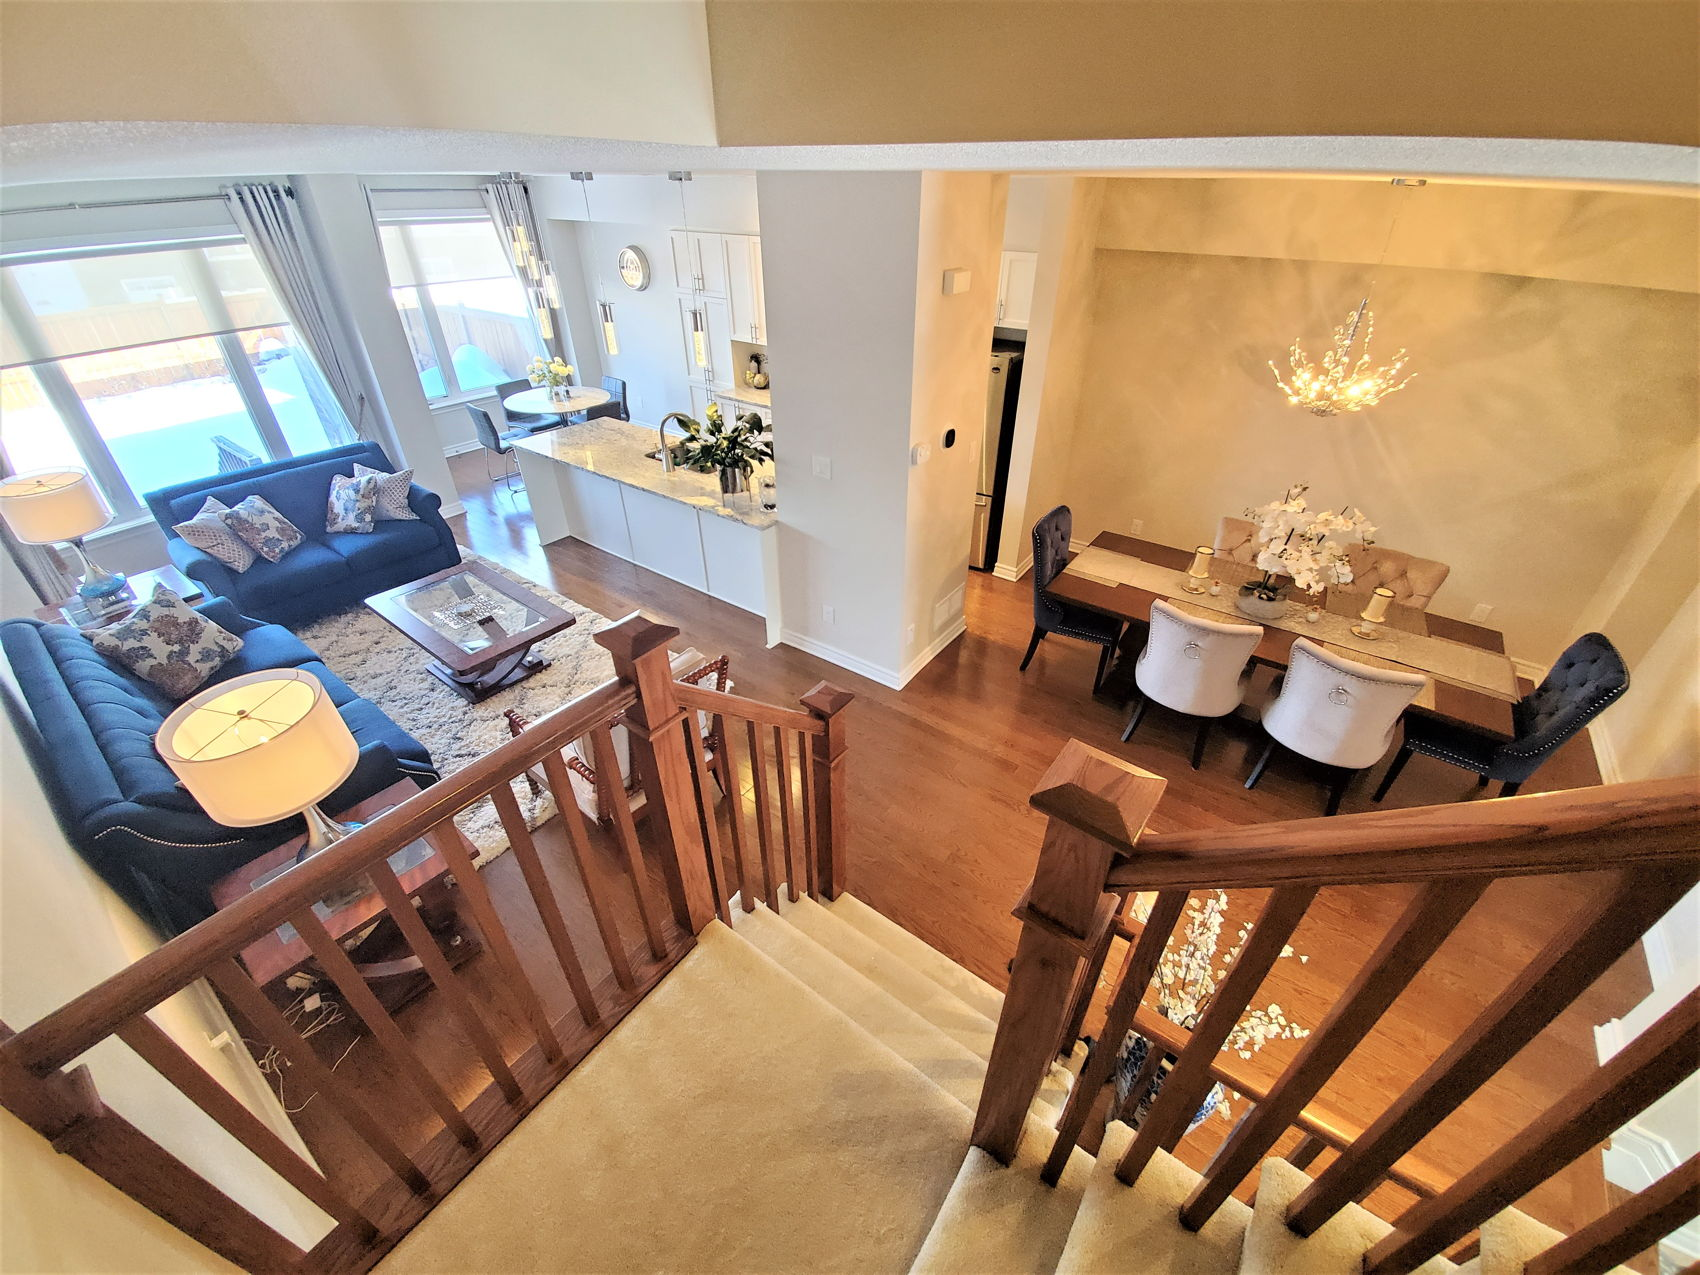 164 Hawkeswood INTERIOR GREAT ROOM KITCHEN FROM STAIRCASE.jpg